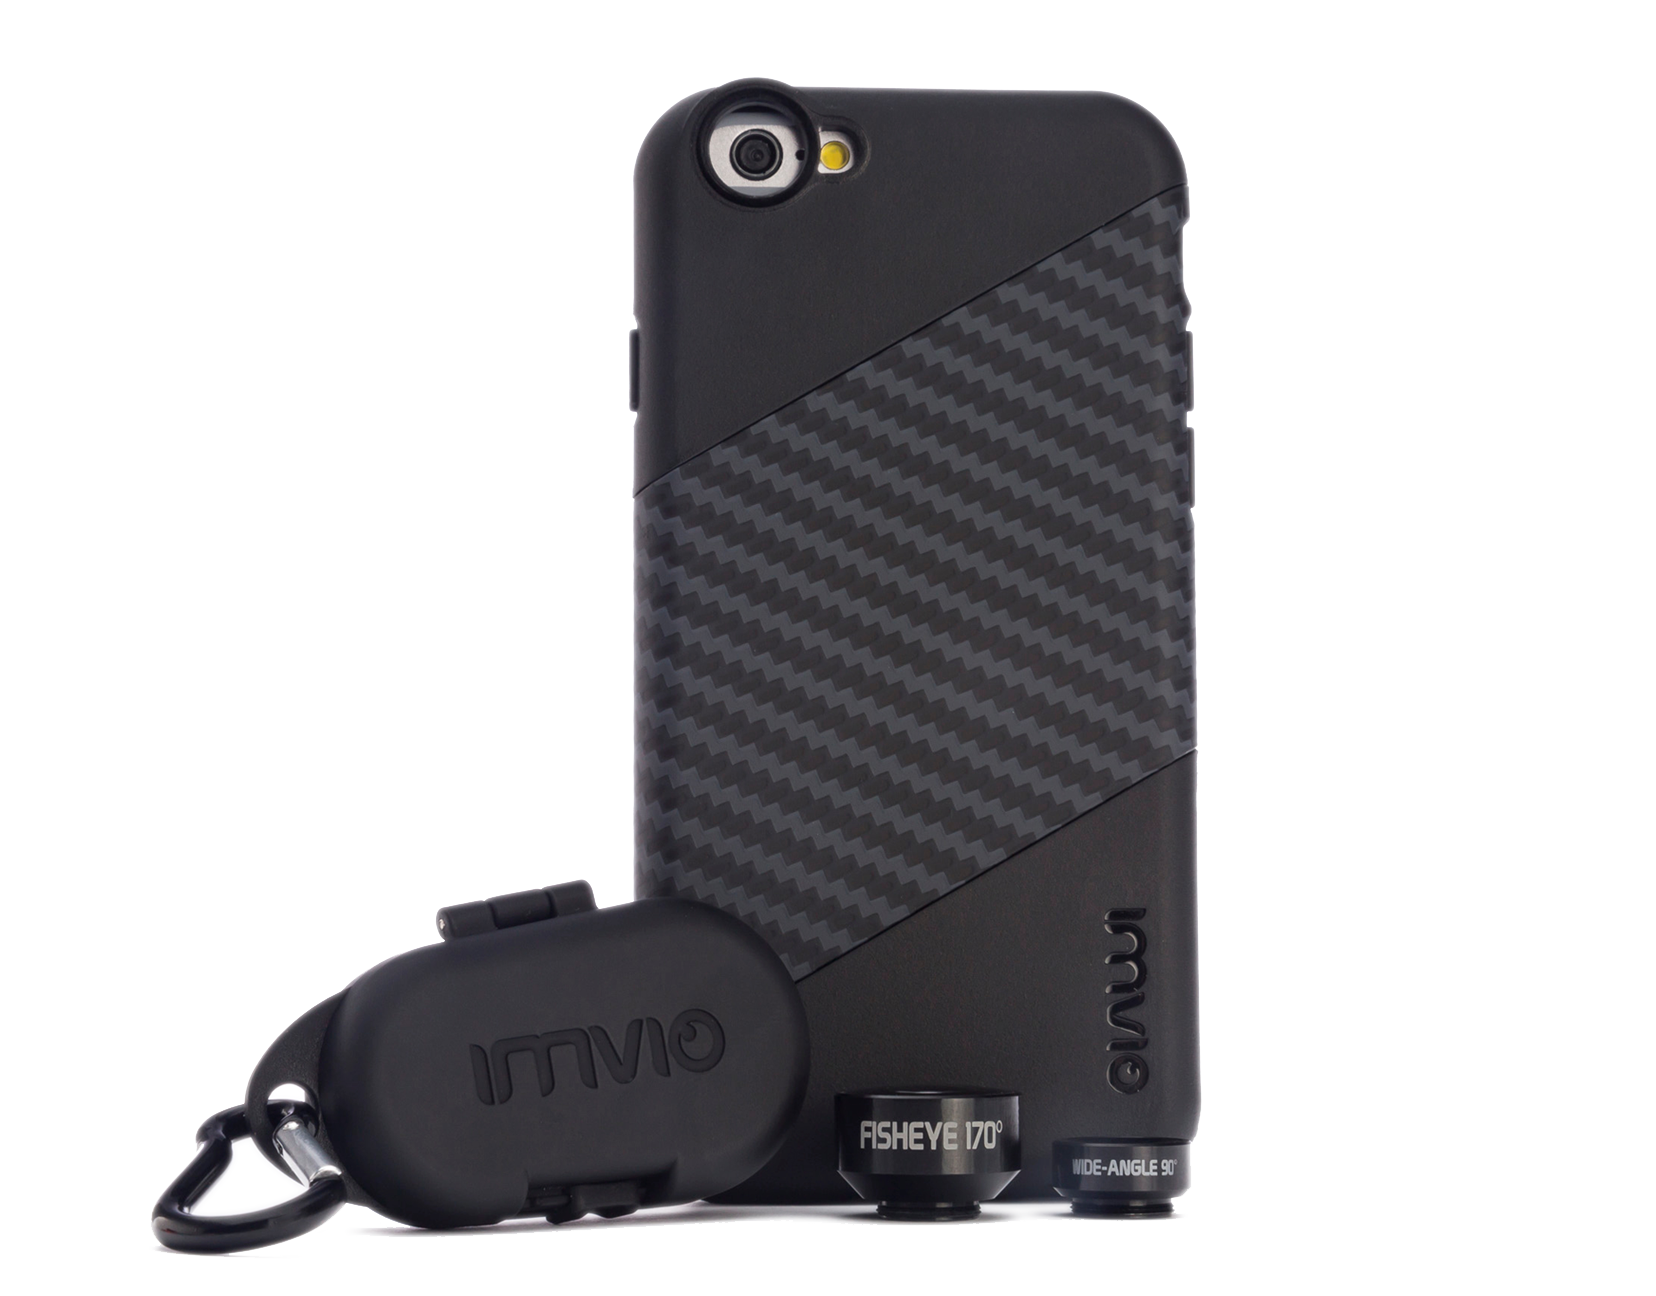 Official Company Photograph of the lens kit and iPhone case. Image © IMVIO